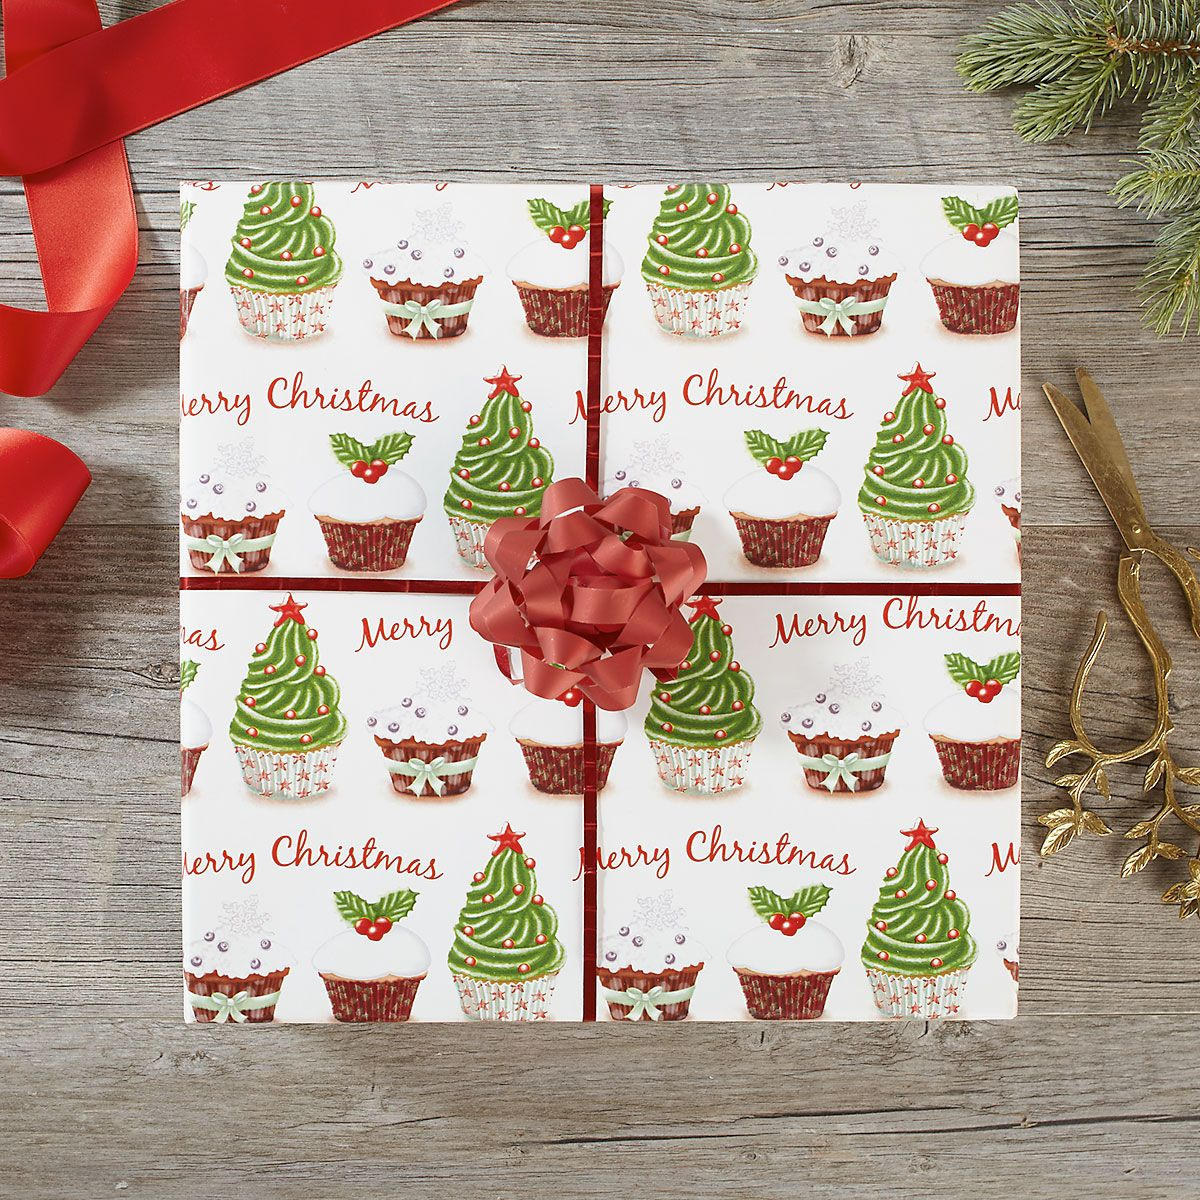 Christmas Cupcake Jumbo Rolled Gift Wrap and Labels